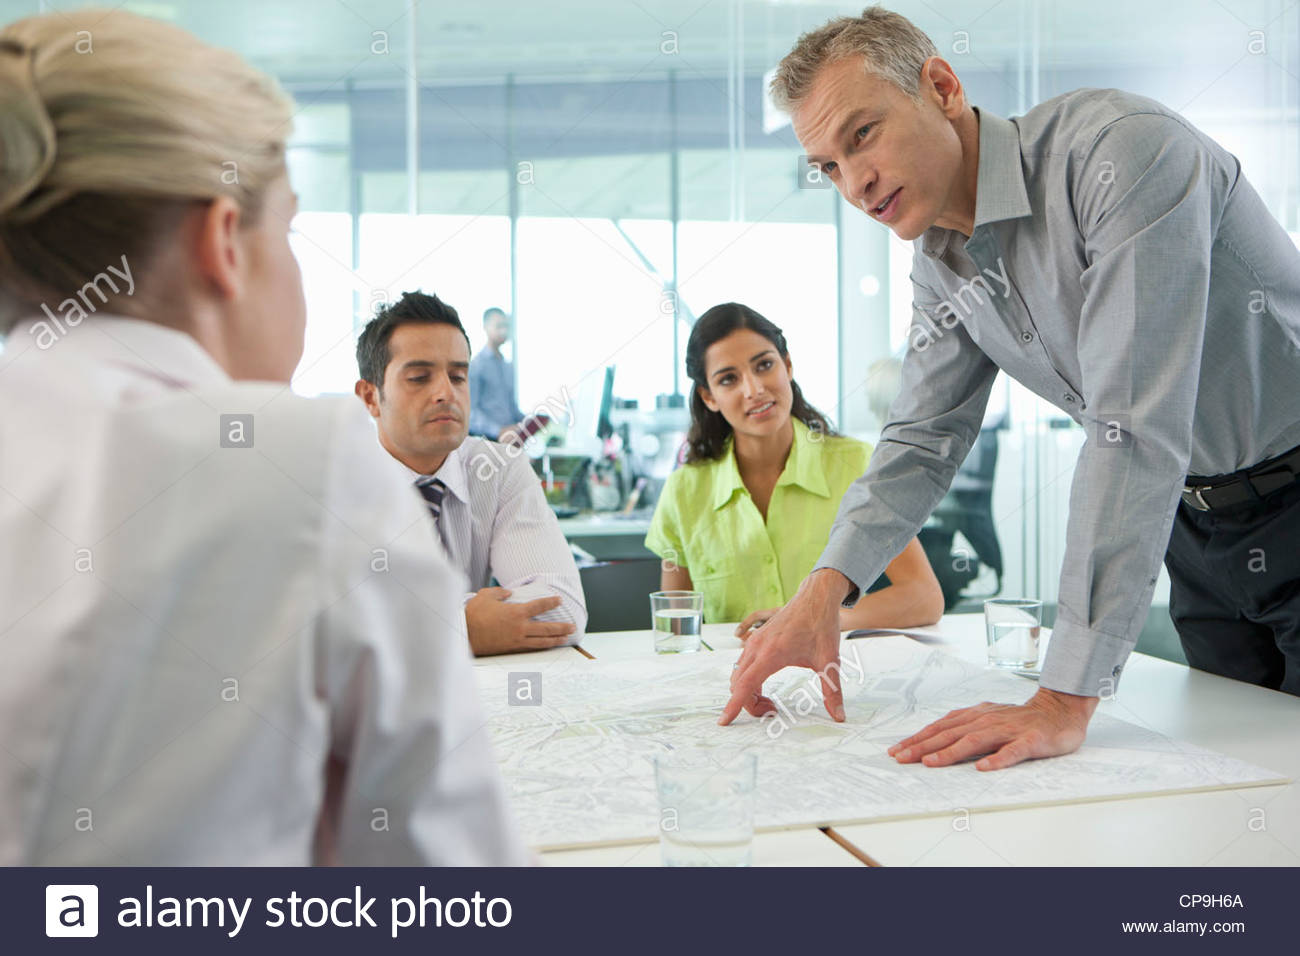 Business people discussing map in conference room - Stock Image